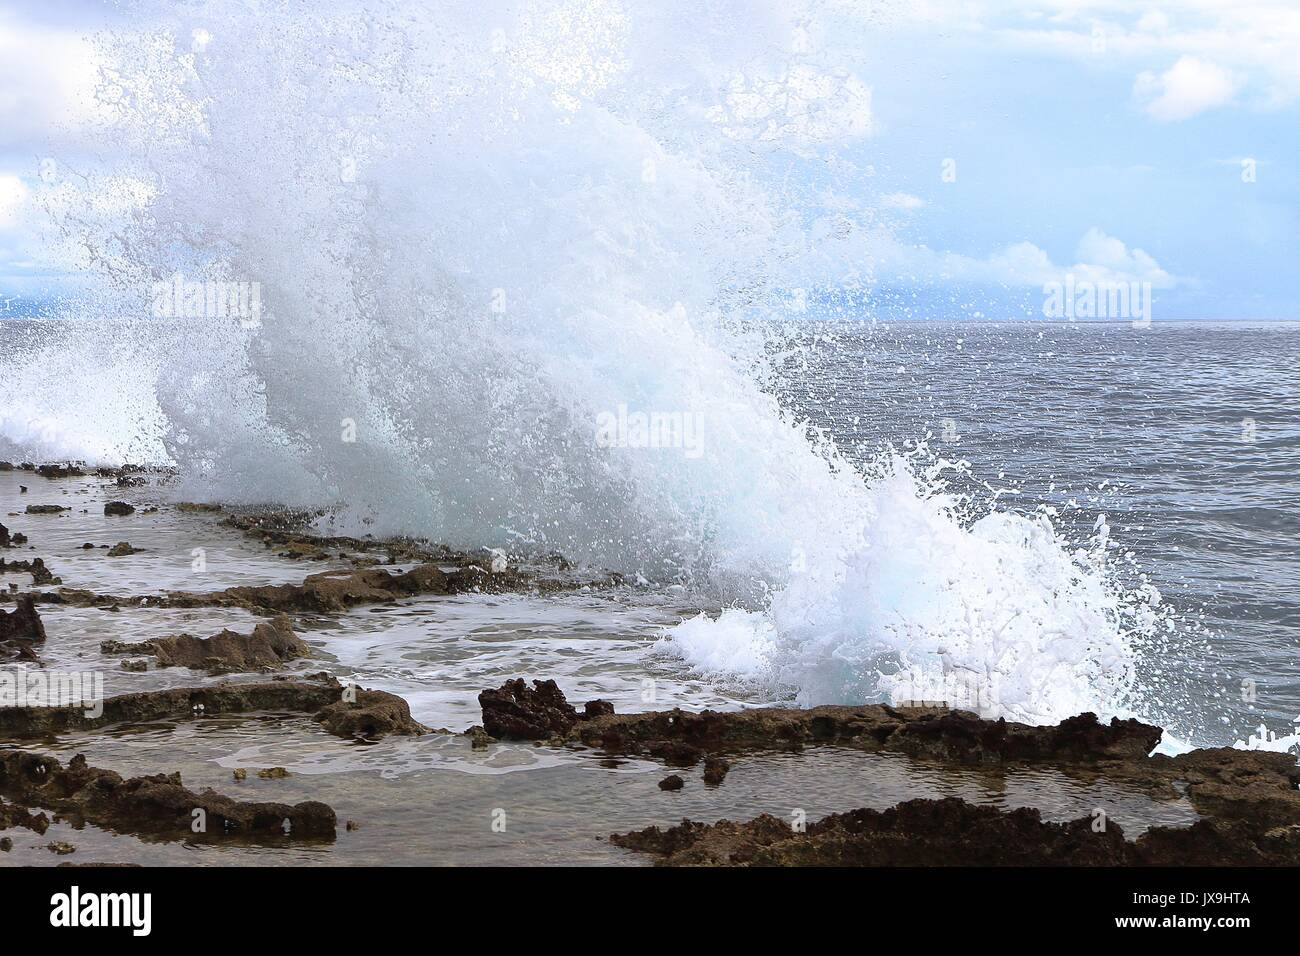 As Strong Waves Hits the Cliffs of Guiuan, Samar, Eastern Philippines, a splash of seawater emerges from the edge Stock Photo